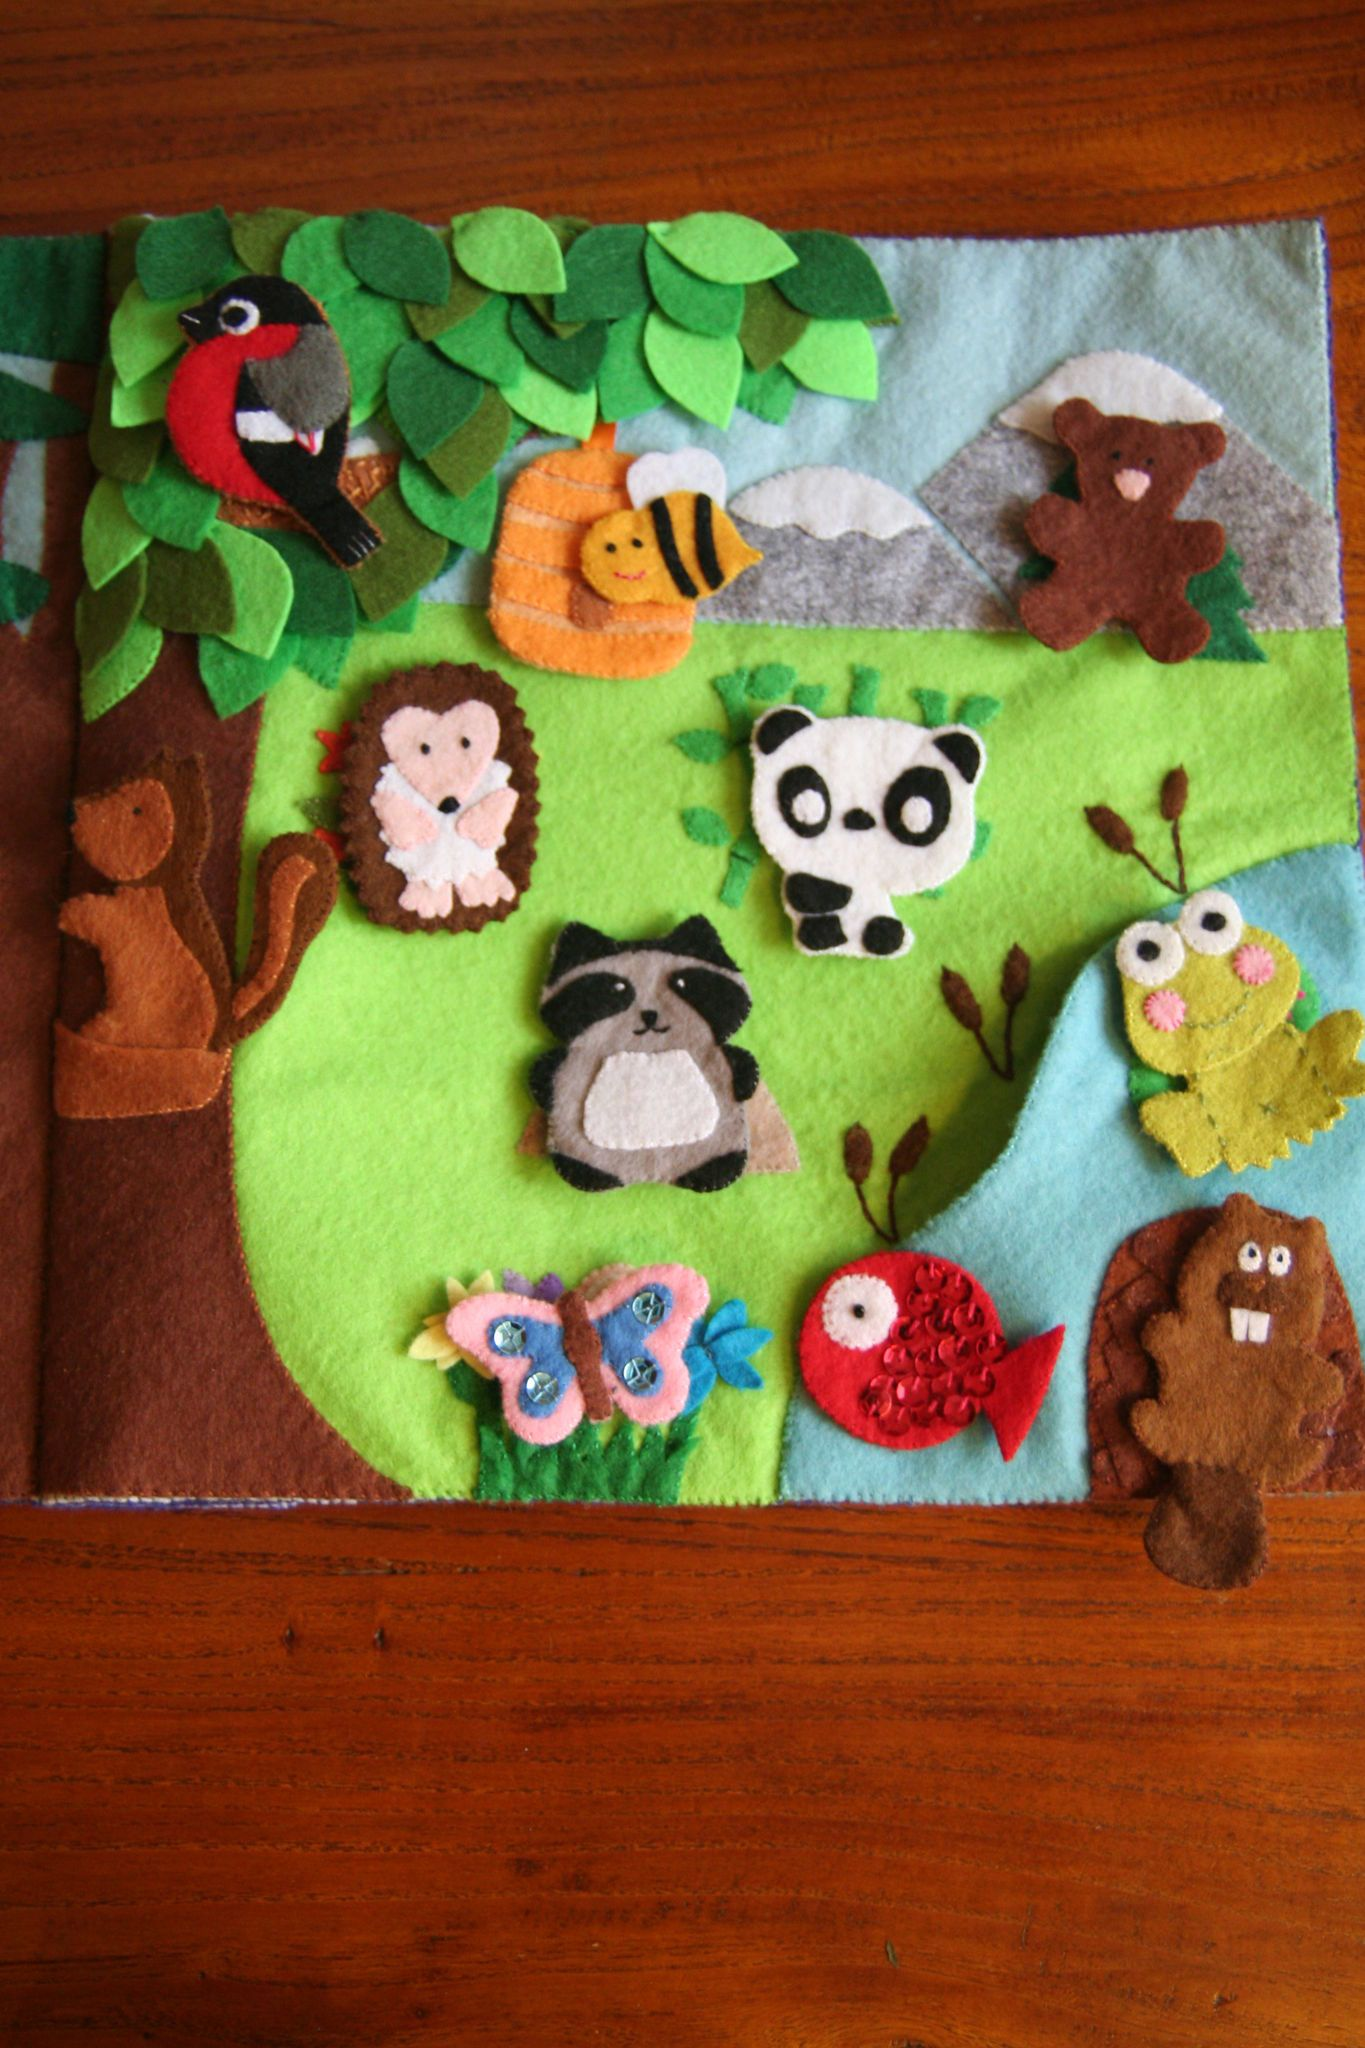 Classroom Activity Place The Animals In The Correct Habitat A Fun Way To Test The Children